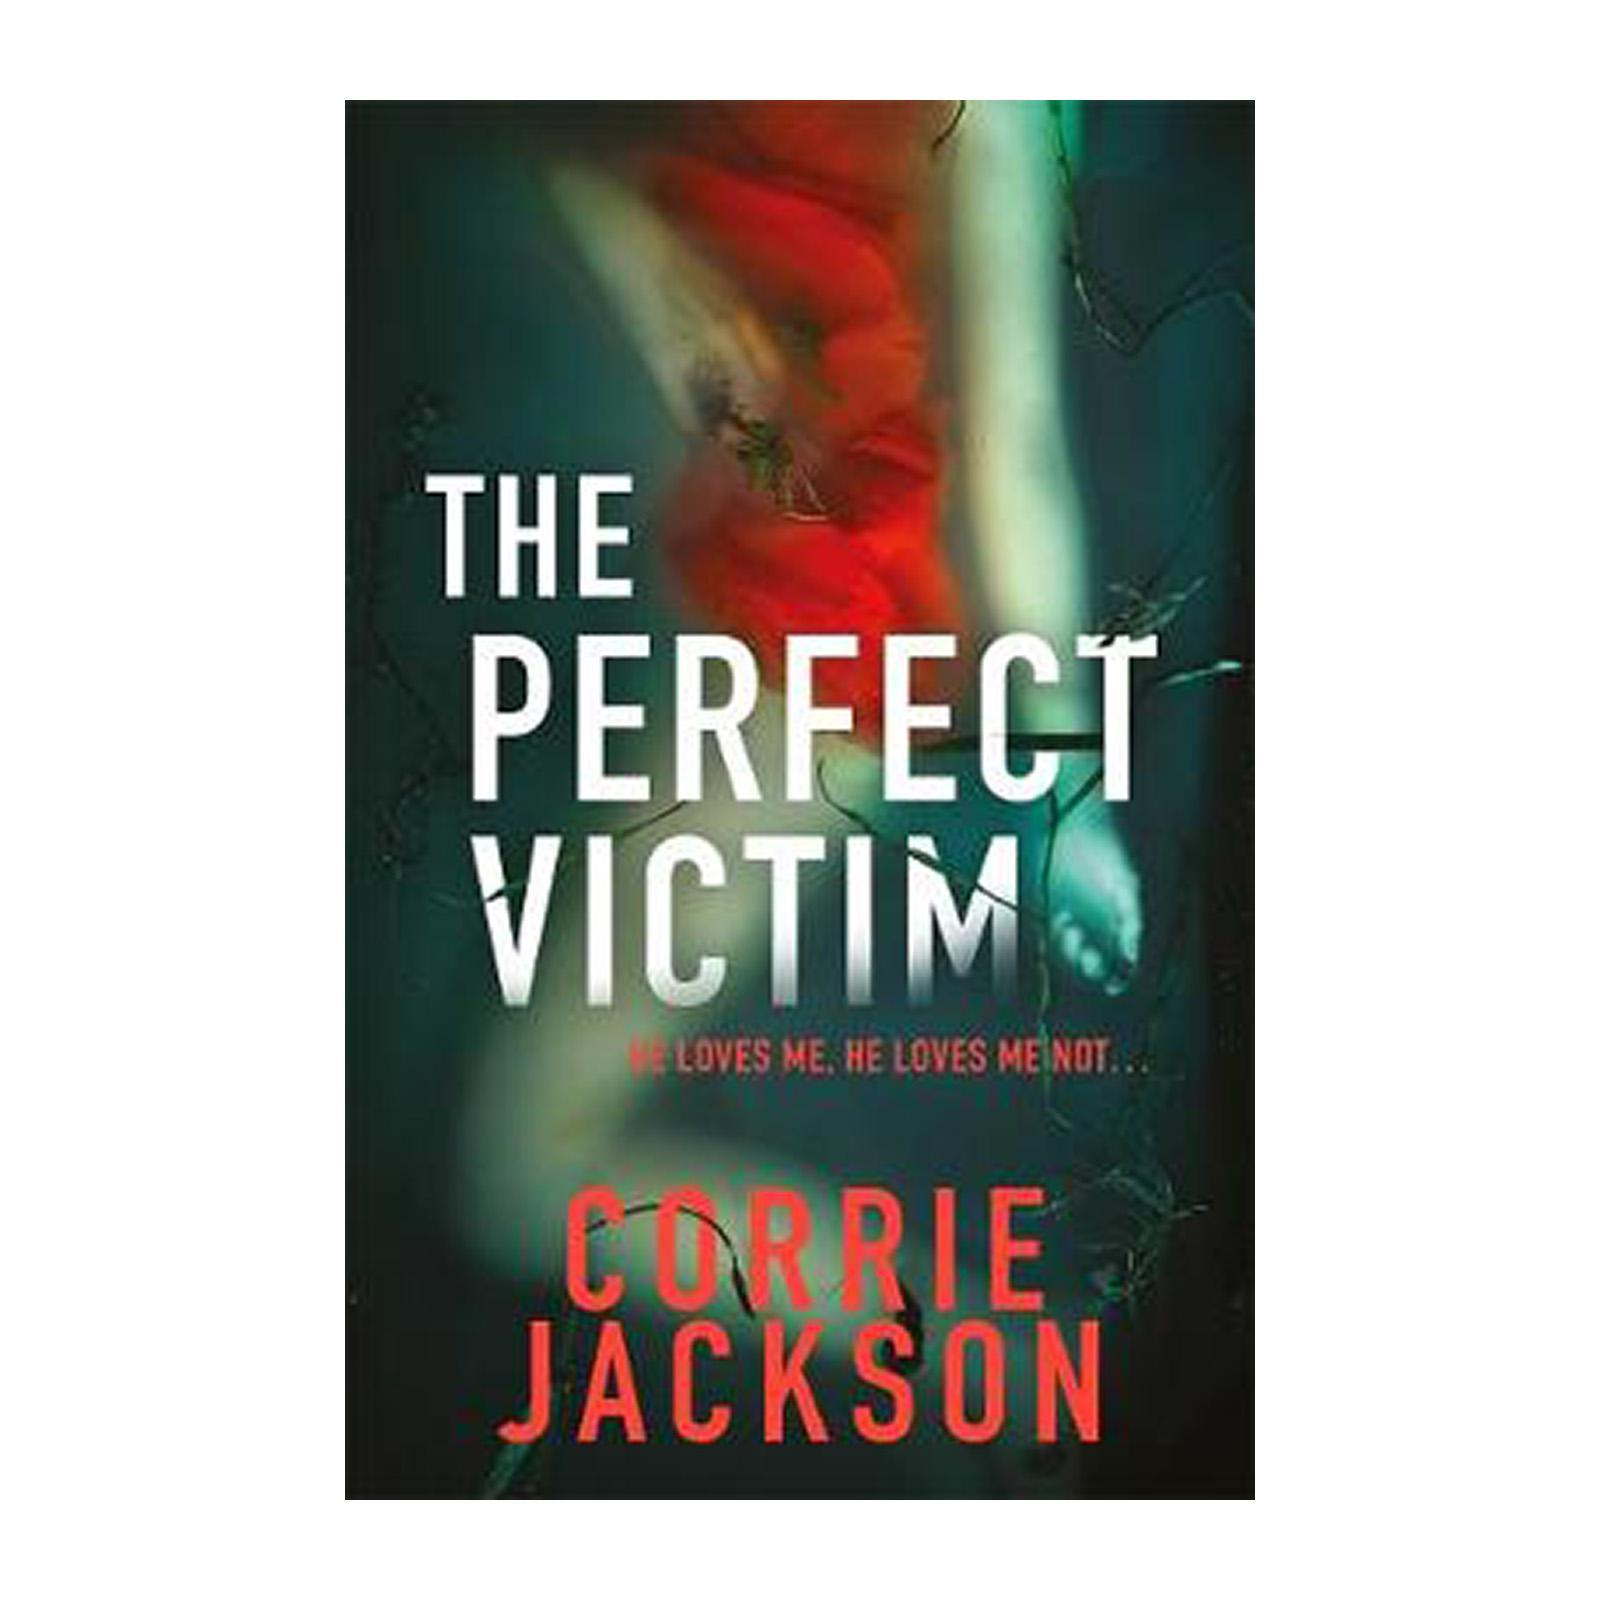 The Perfect Victim: How Far Would You Go For Friendship? (Paperback)